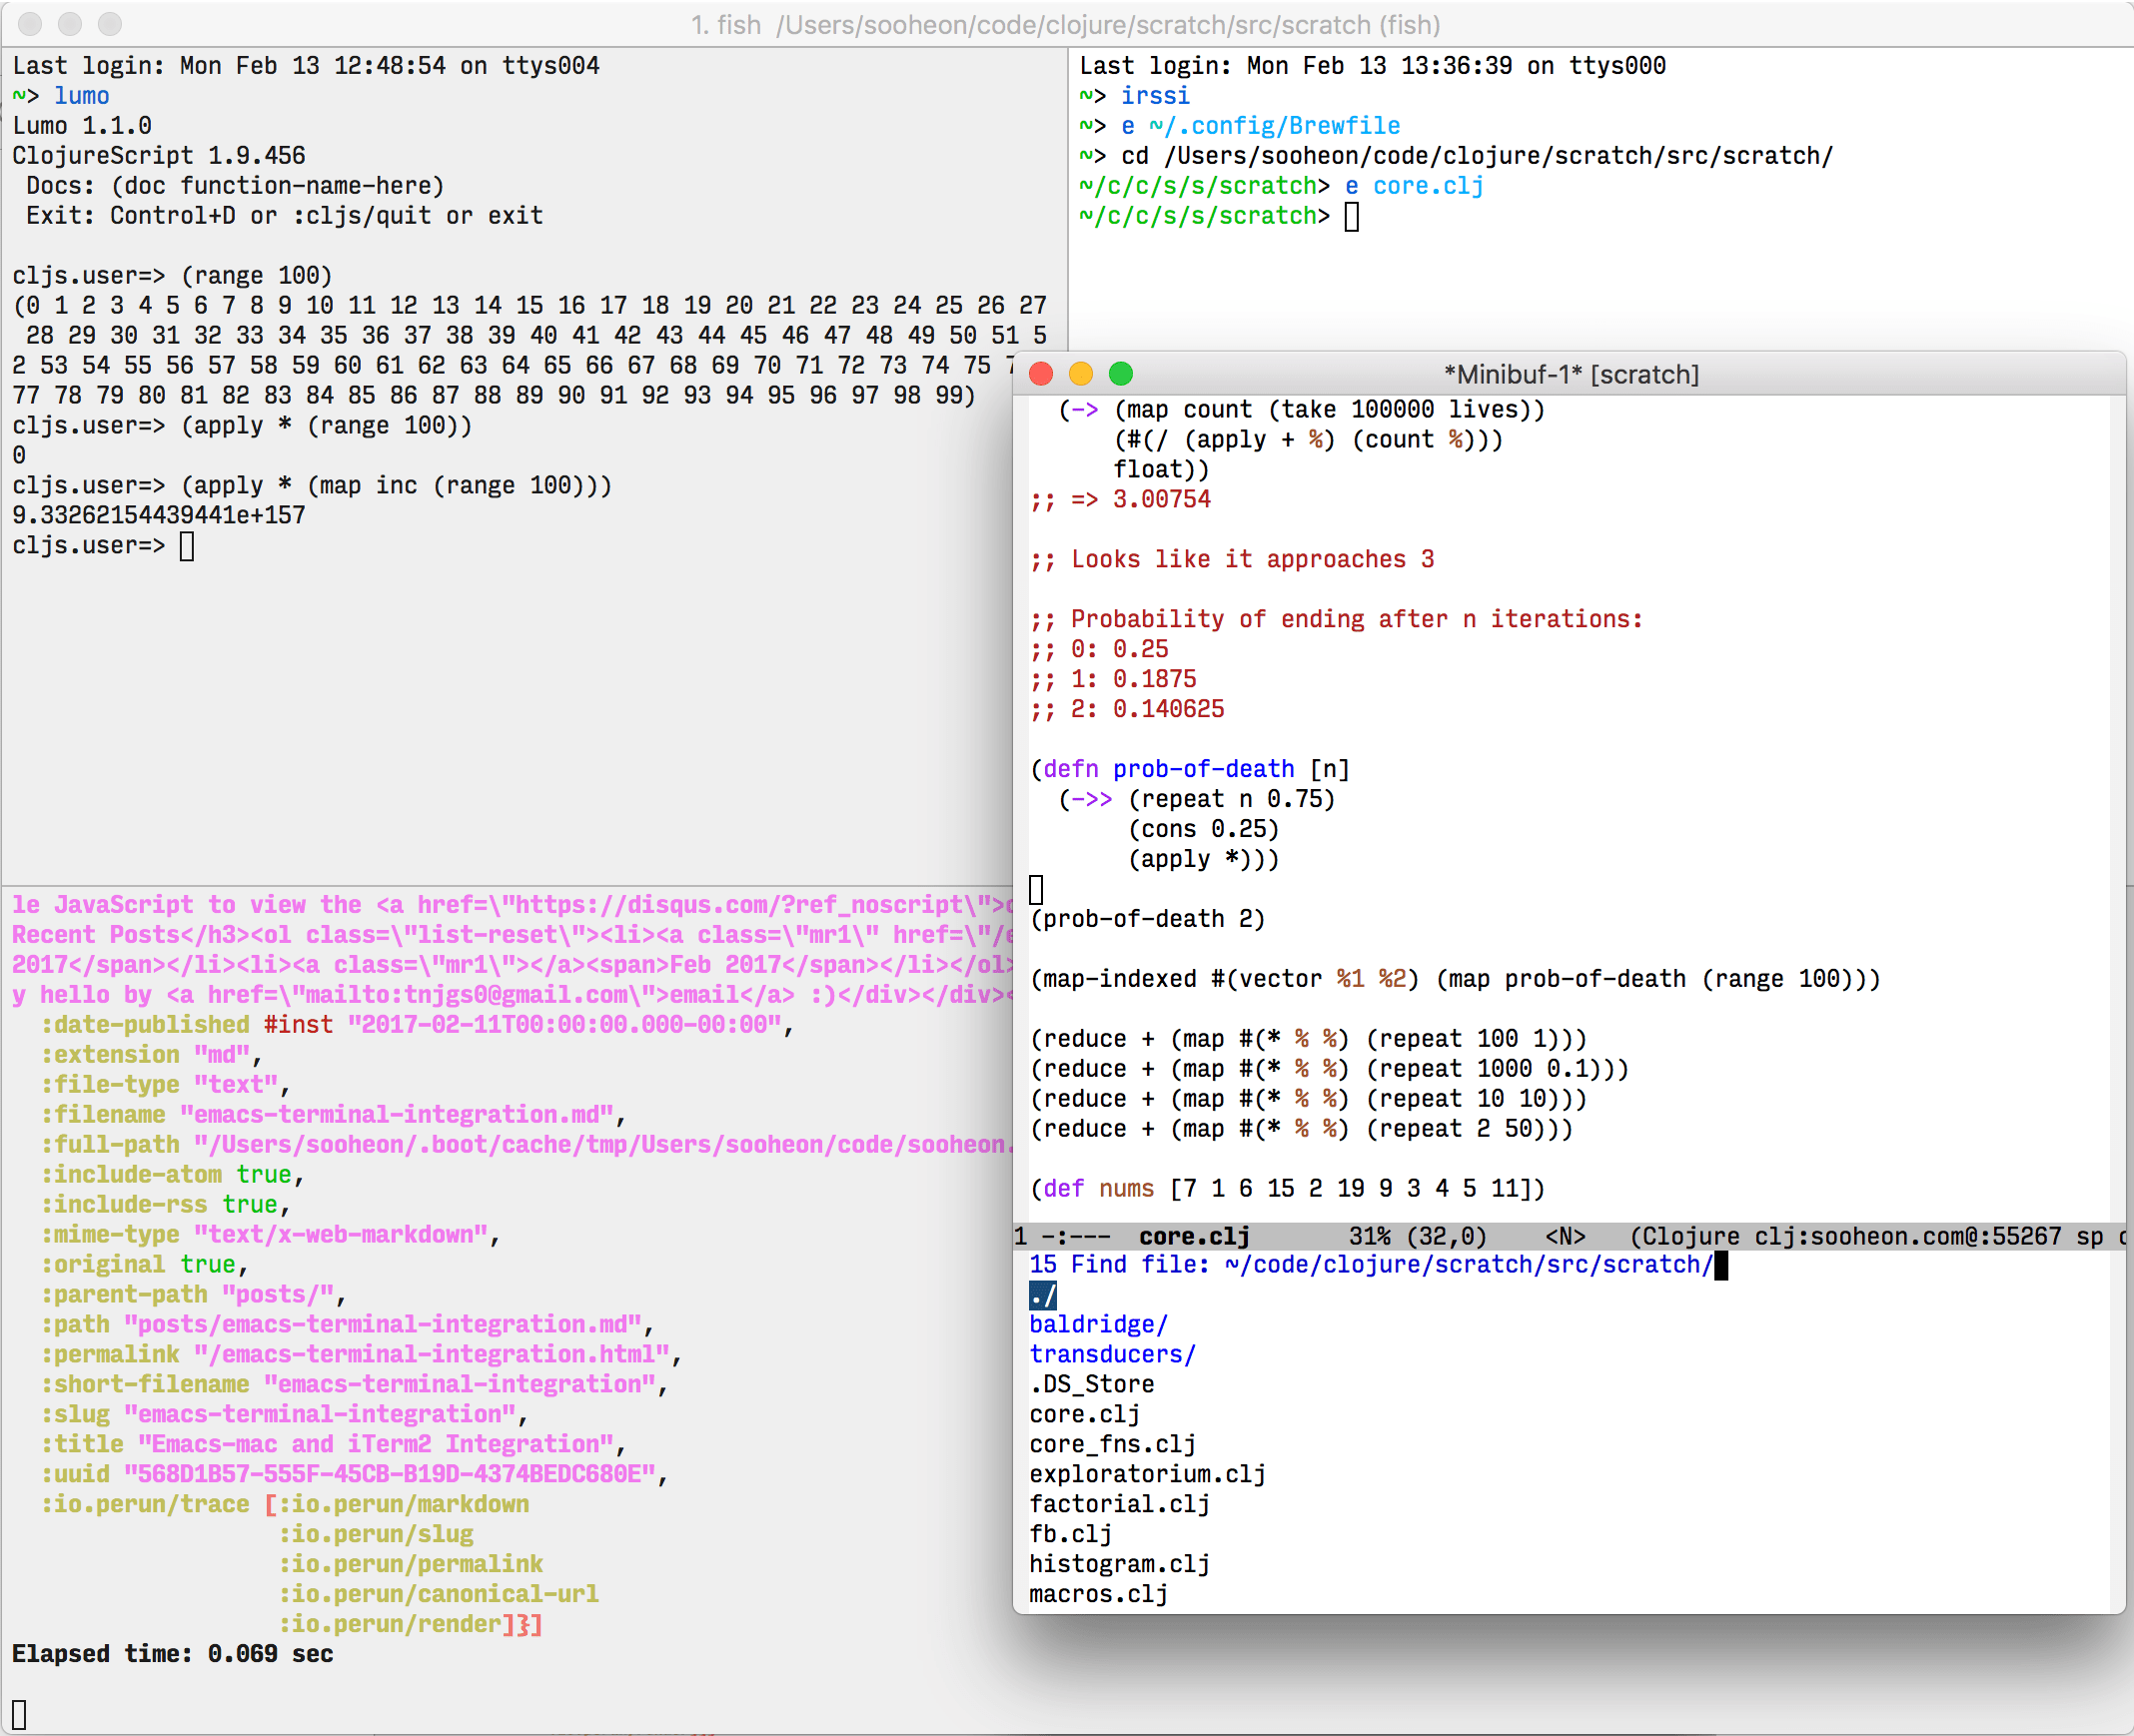 My Emacs-iTerm workflow